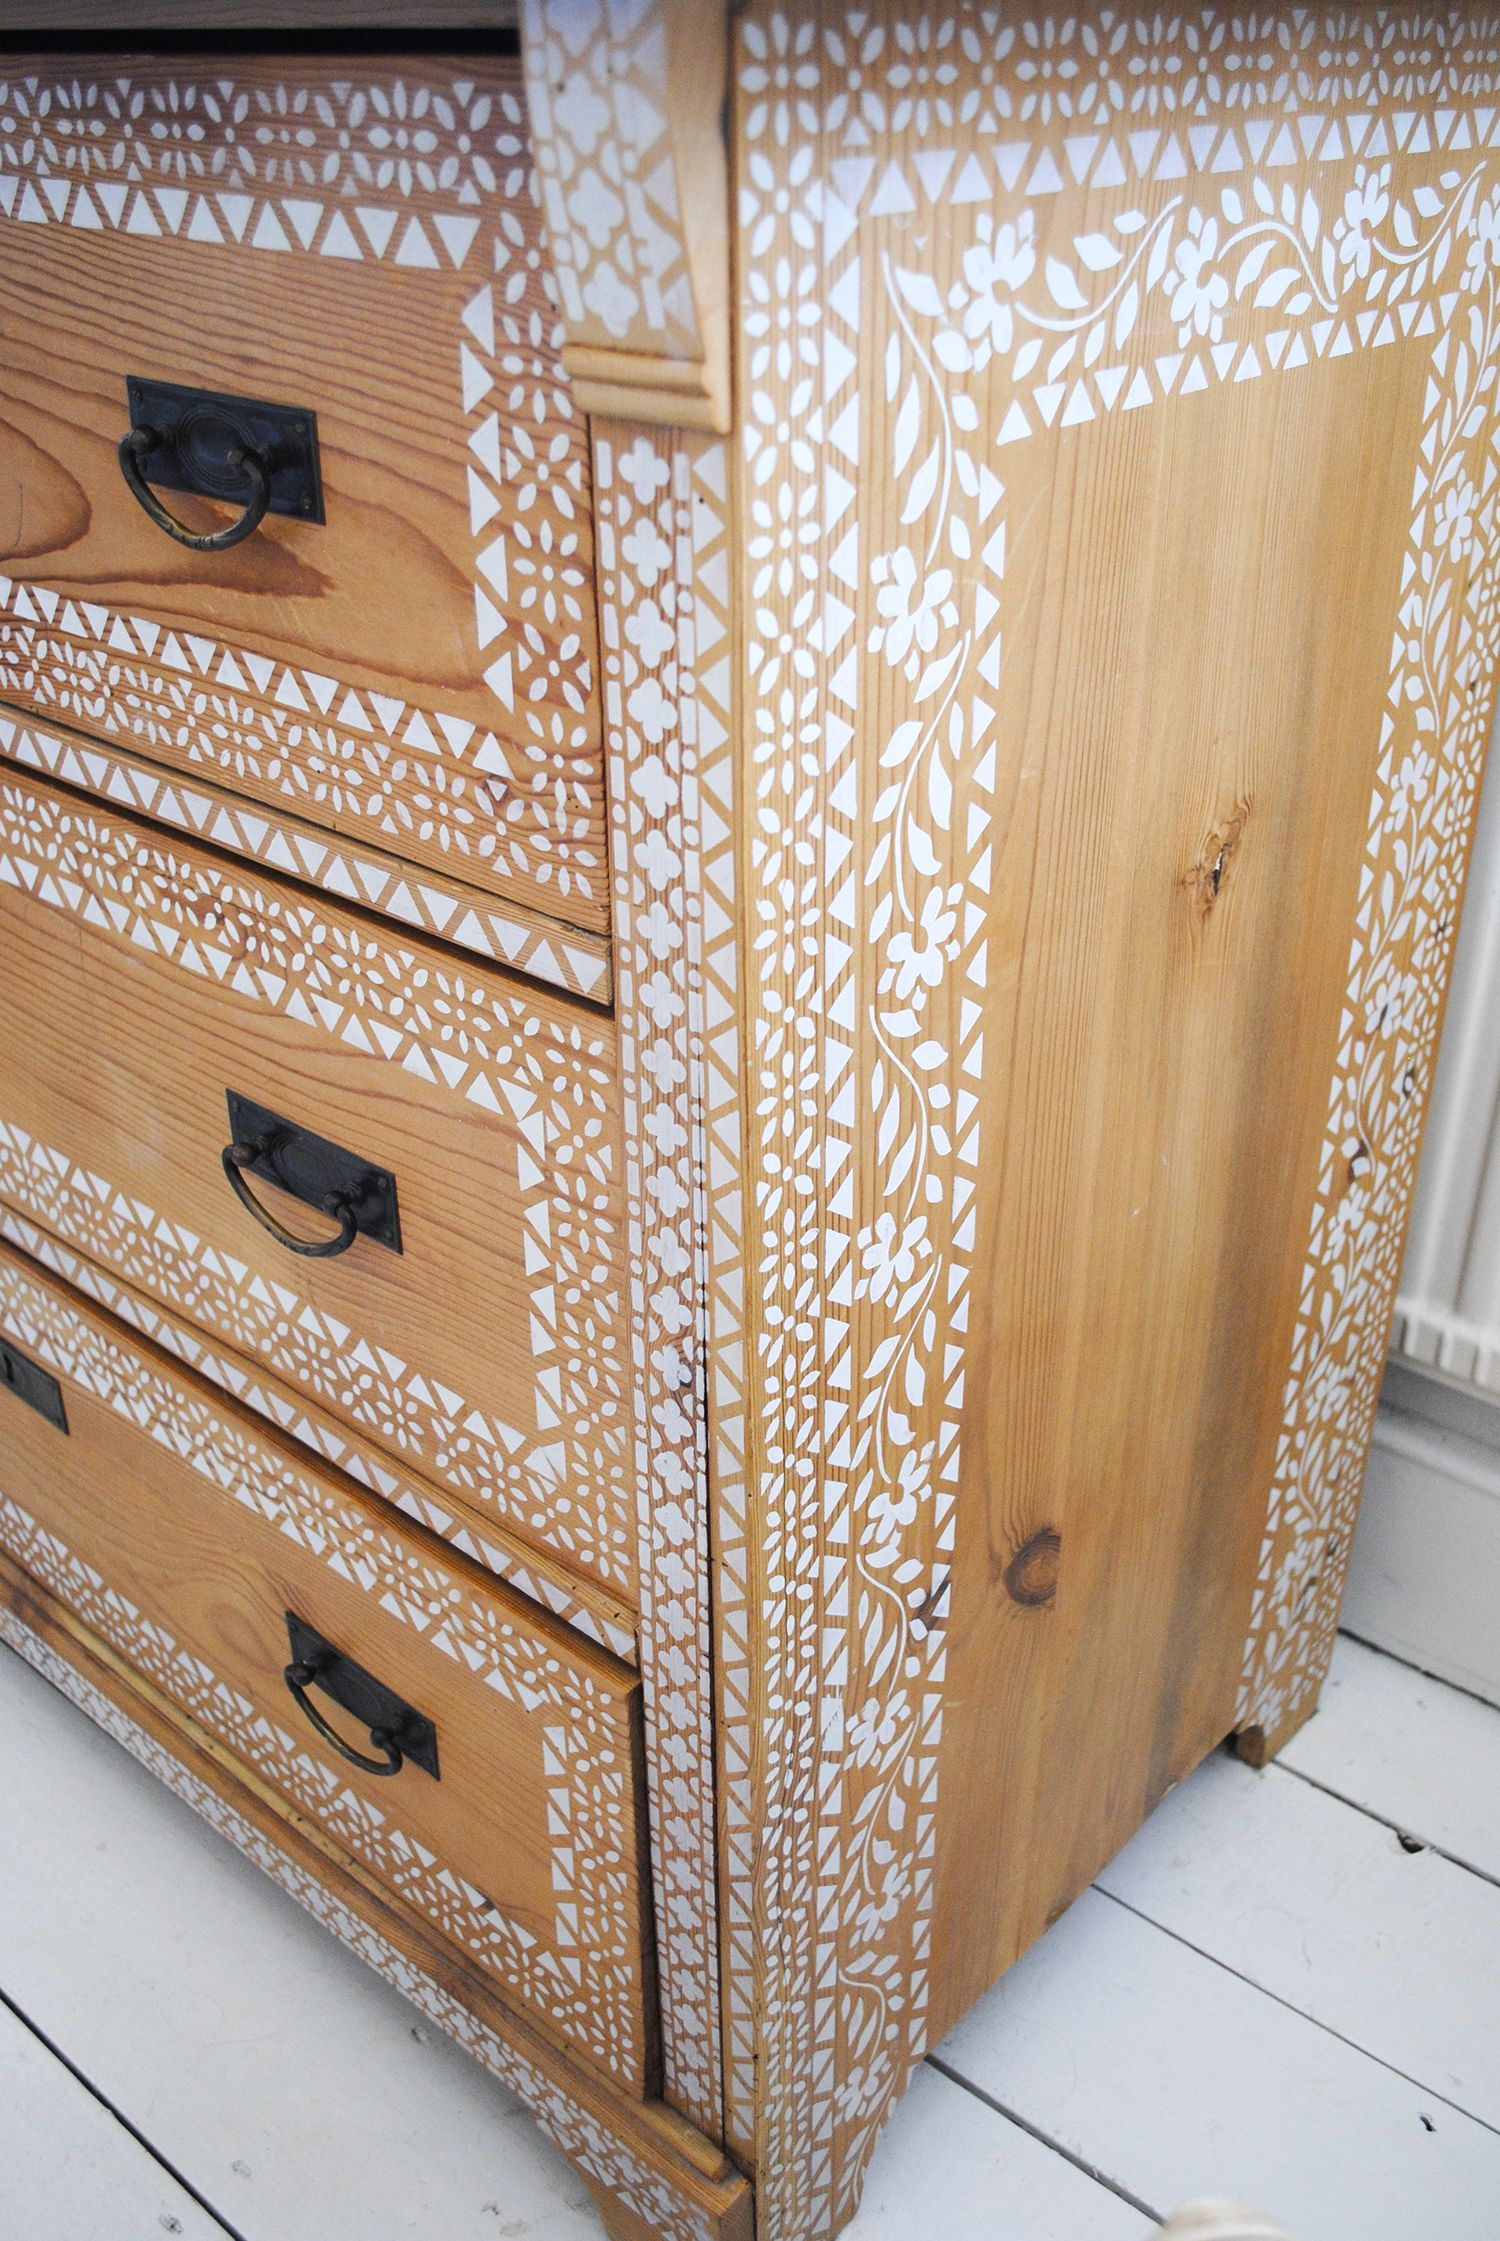 Wonderful Stencilling Onto Bare Pine. #nicolettetabram #stencil #paintedfurniture